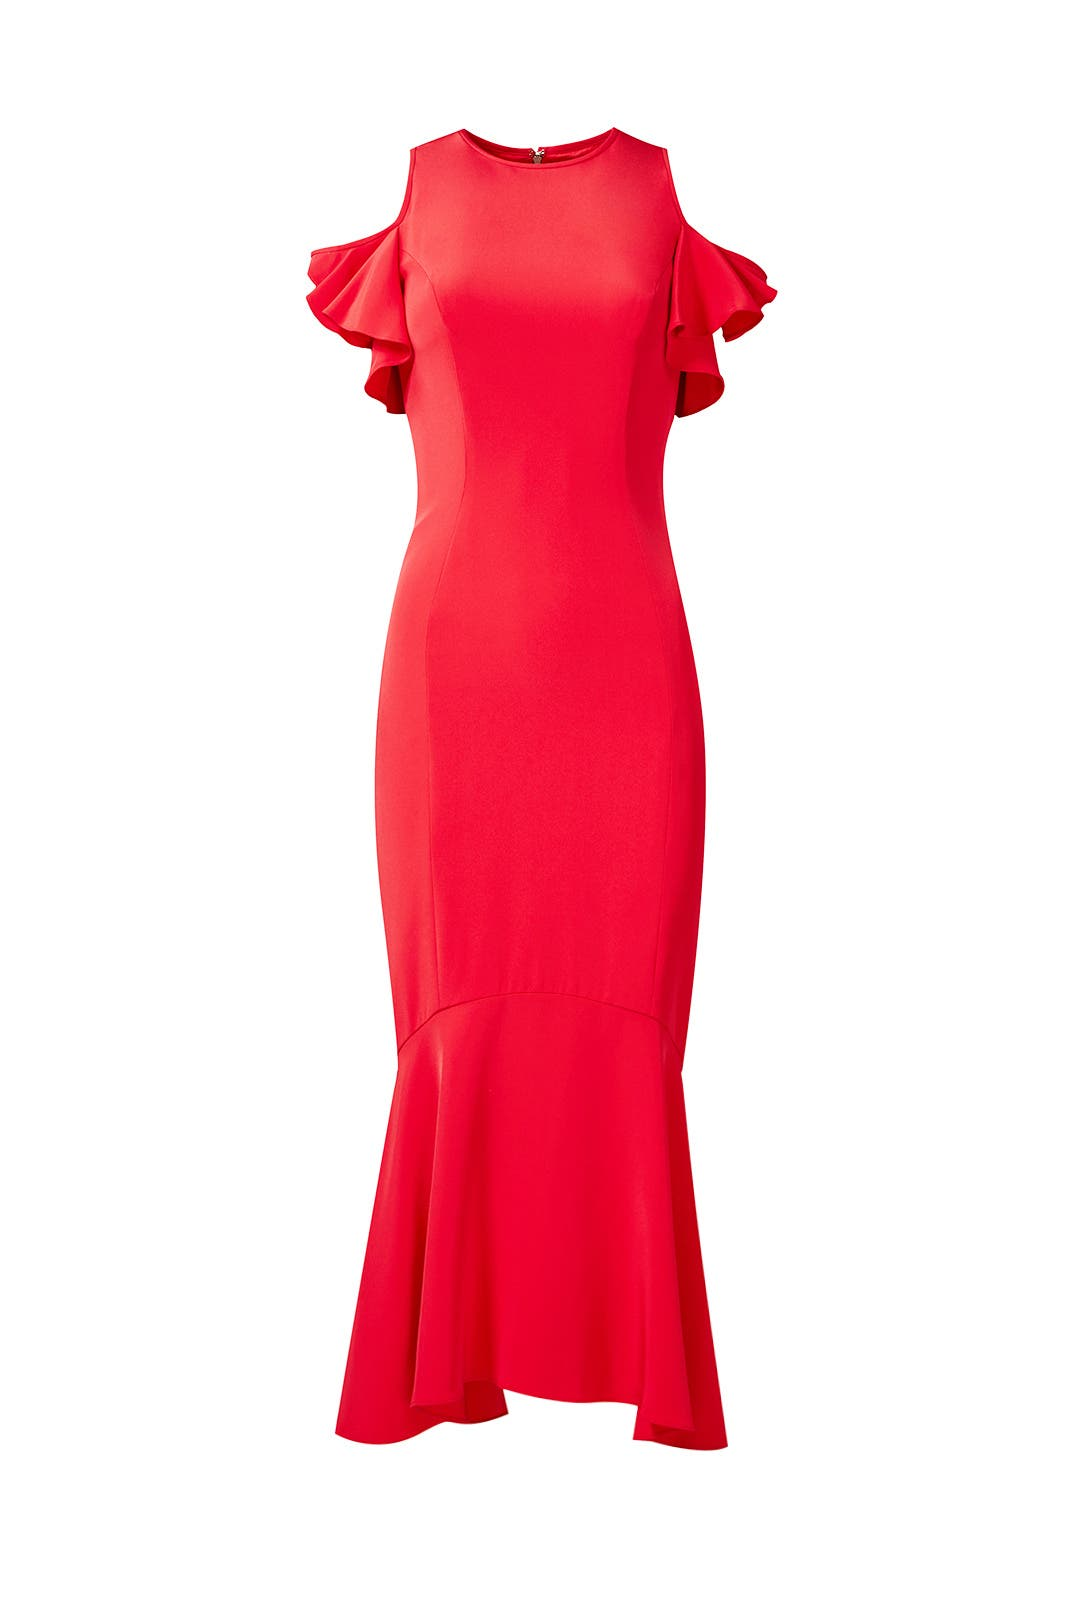 Geranium Ruffle Dress by Theia for $75 - $95 | Rent the Runway